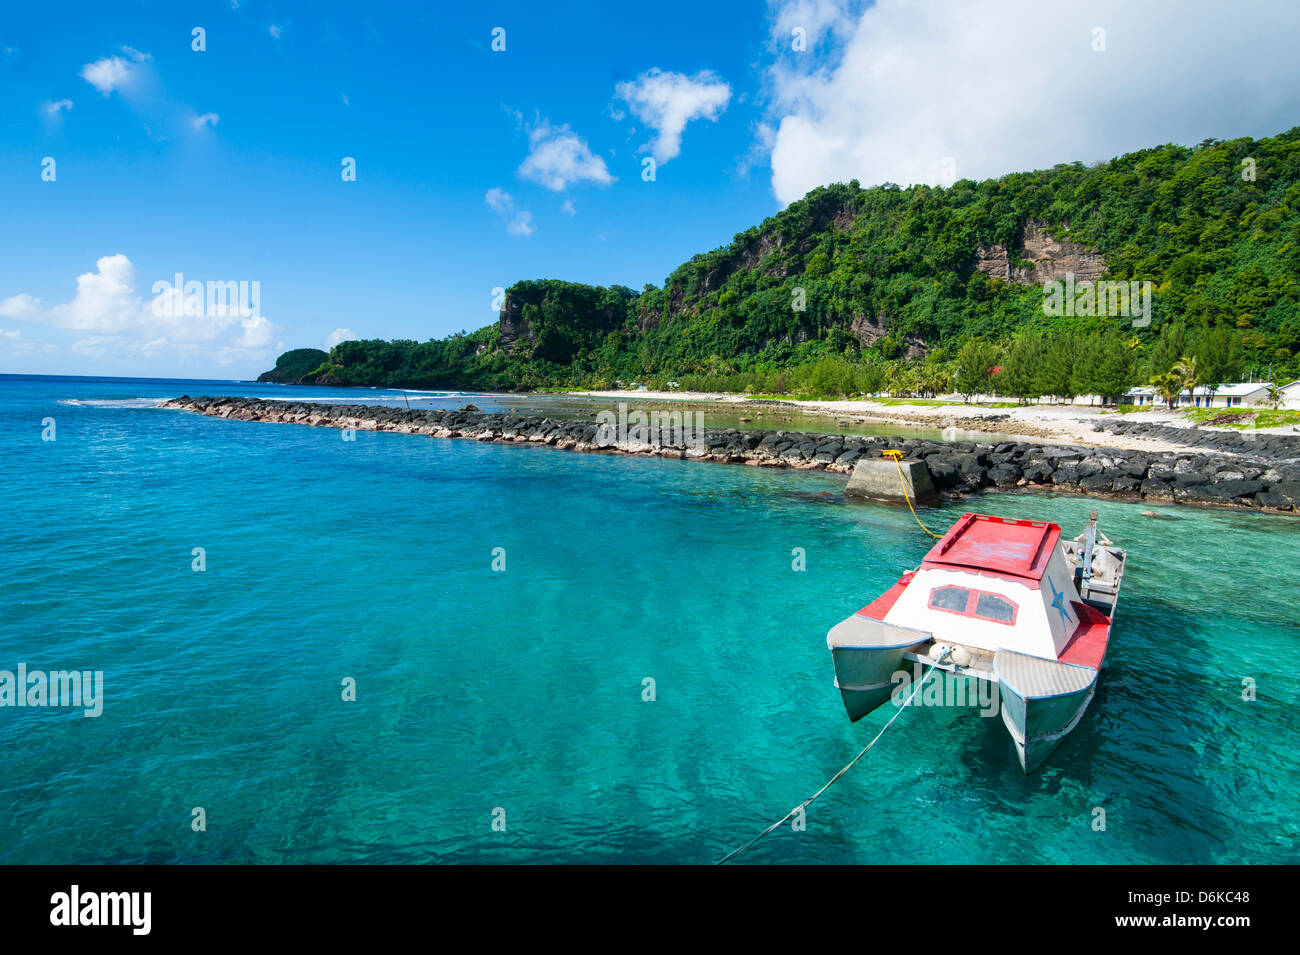 Pretty bay and turquoise water on Tau Island, Manua Island group, American Samoa, South Pacific, Pacific - Stock Image